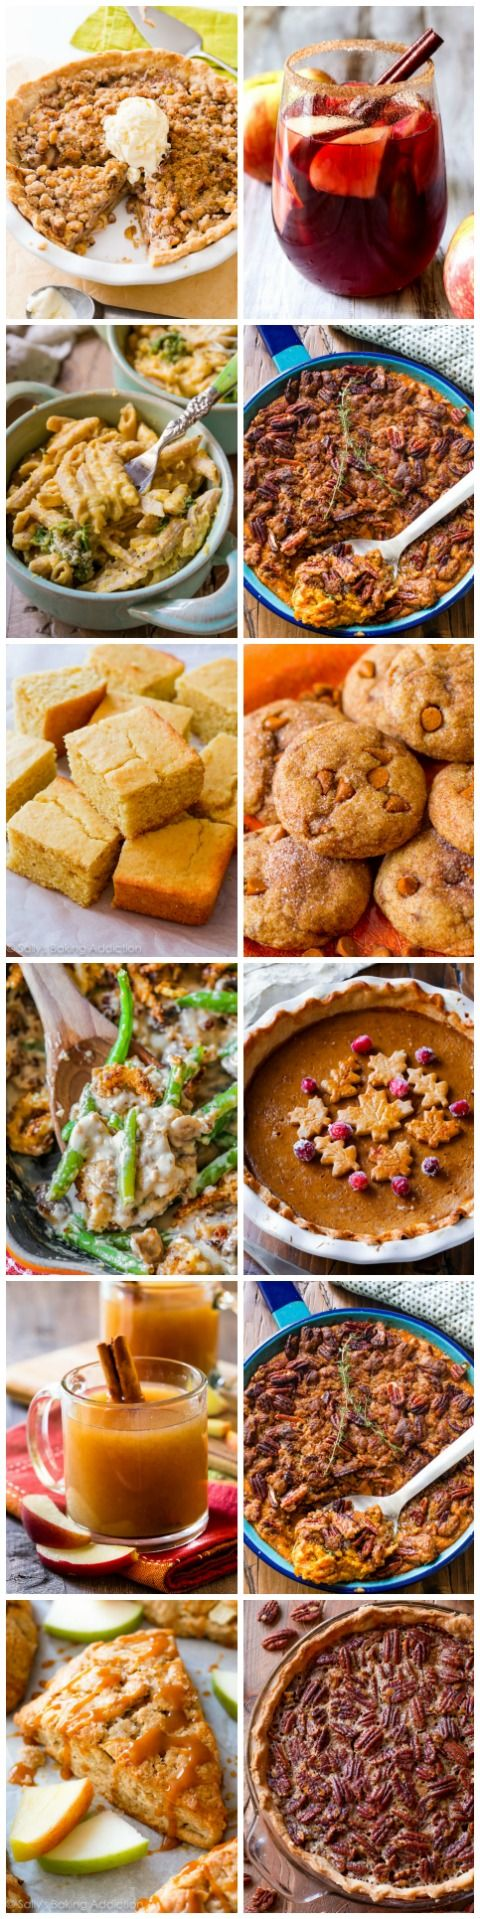 Dozens of delicious recipe ideas for your Thanksgiving feast! All with make-ahead tips, photos, and easy to follow instructions!